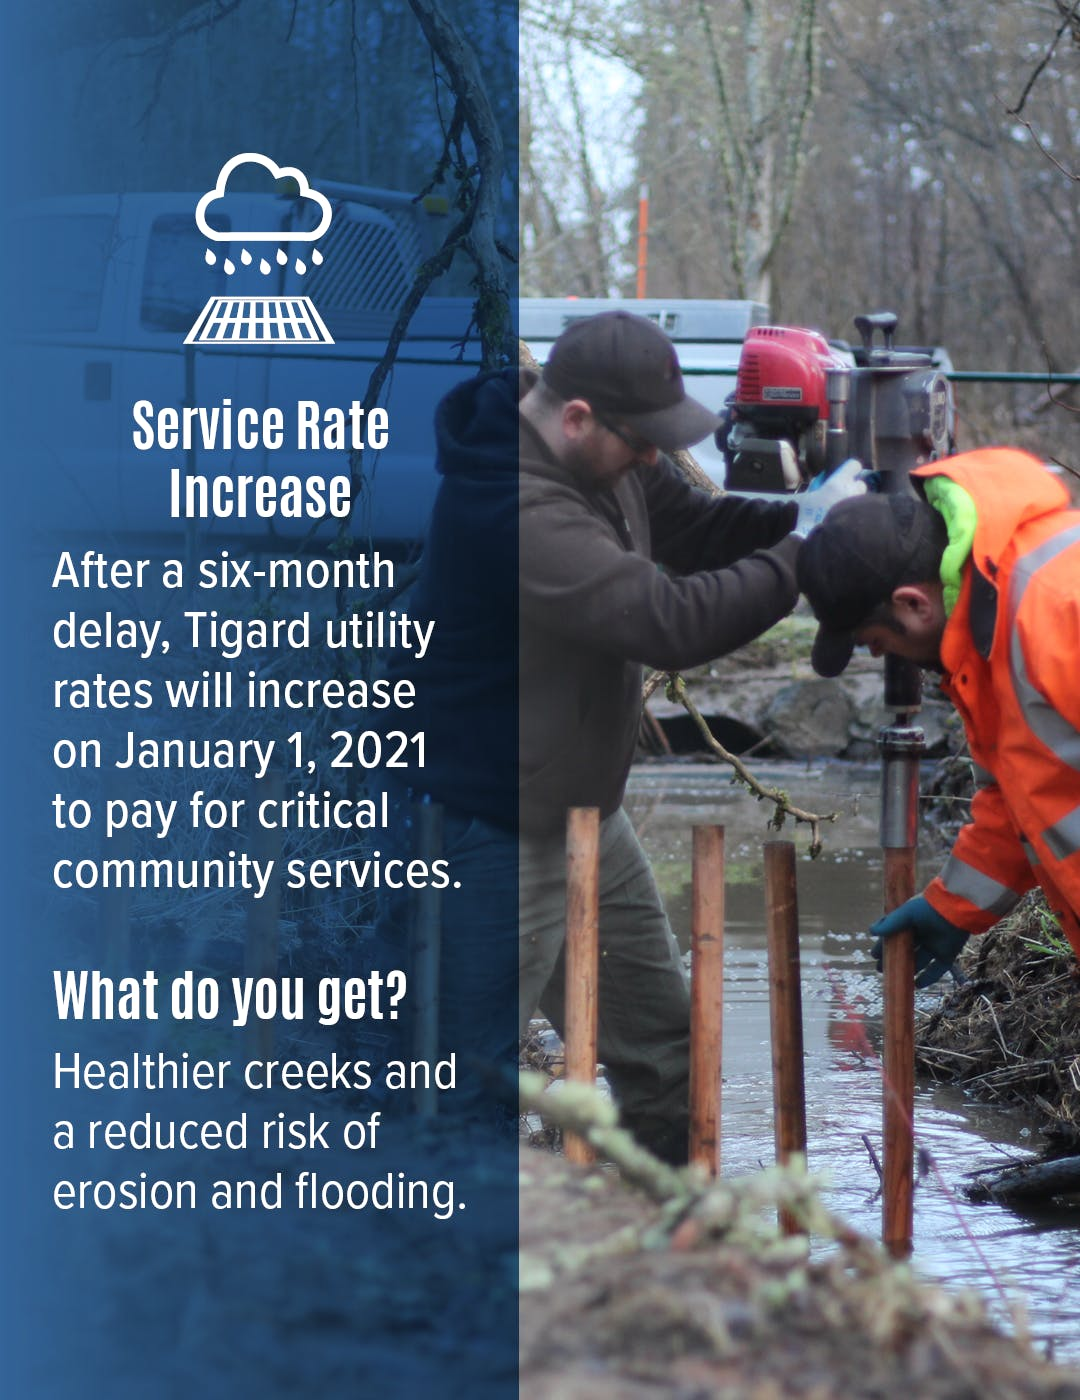 Stormwater_Services_Rate_Increases_1080x1400.png